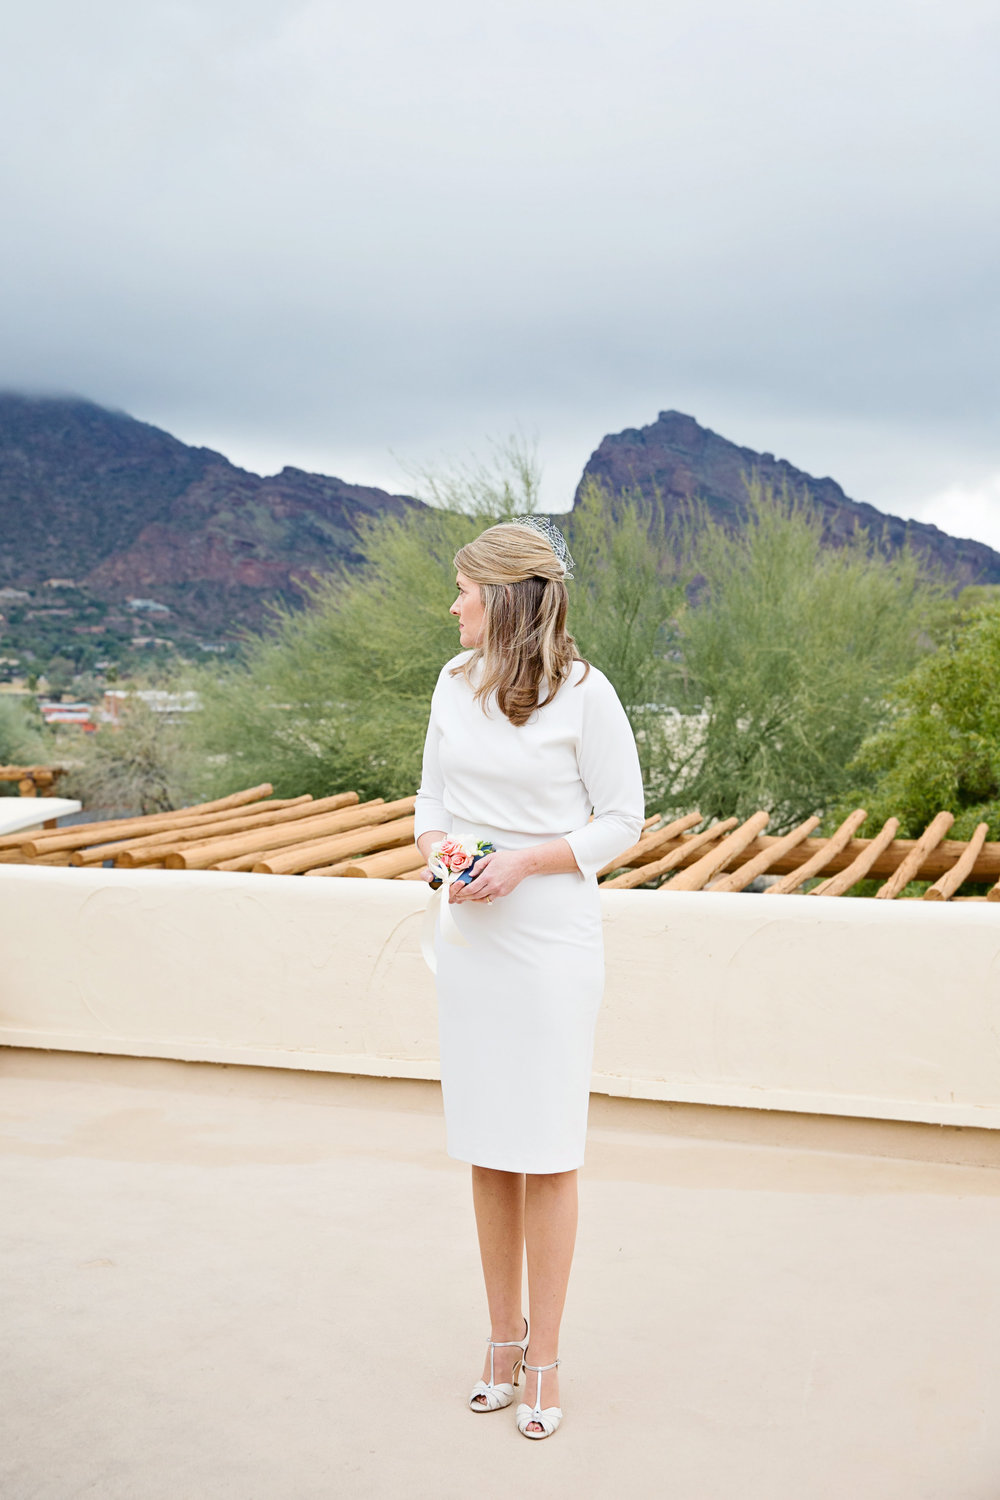 bridal getting ready, wedding details, bridal details, Camelback Mountain, southwestern Parisian wedding